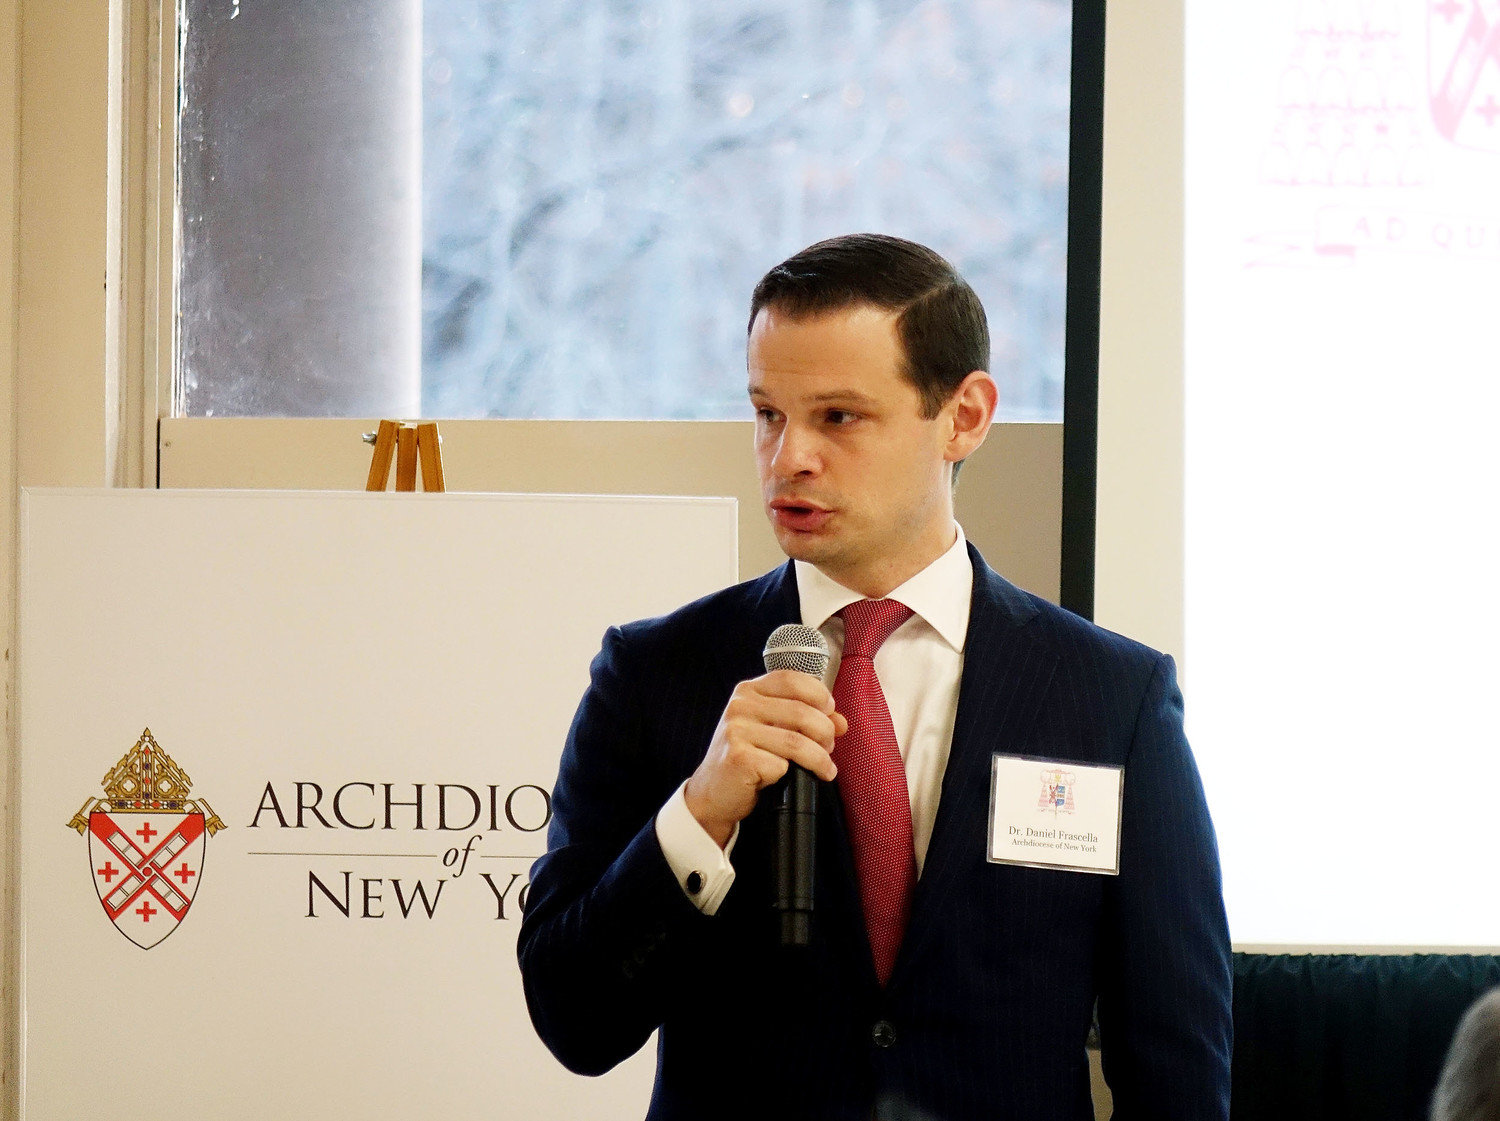 Dr. Daniel Frascella, director of the archdiocese's Adult Faith Formation Office, discusses the support his office receives from the Cardinal's Appeal.